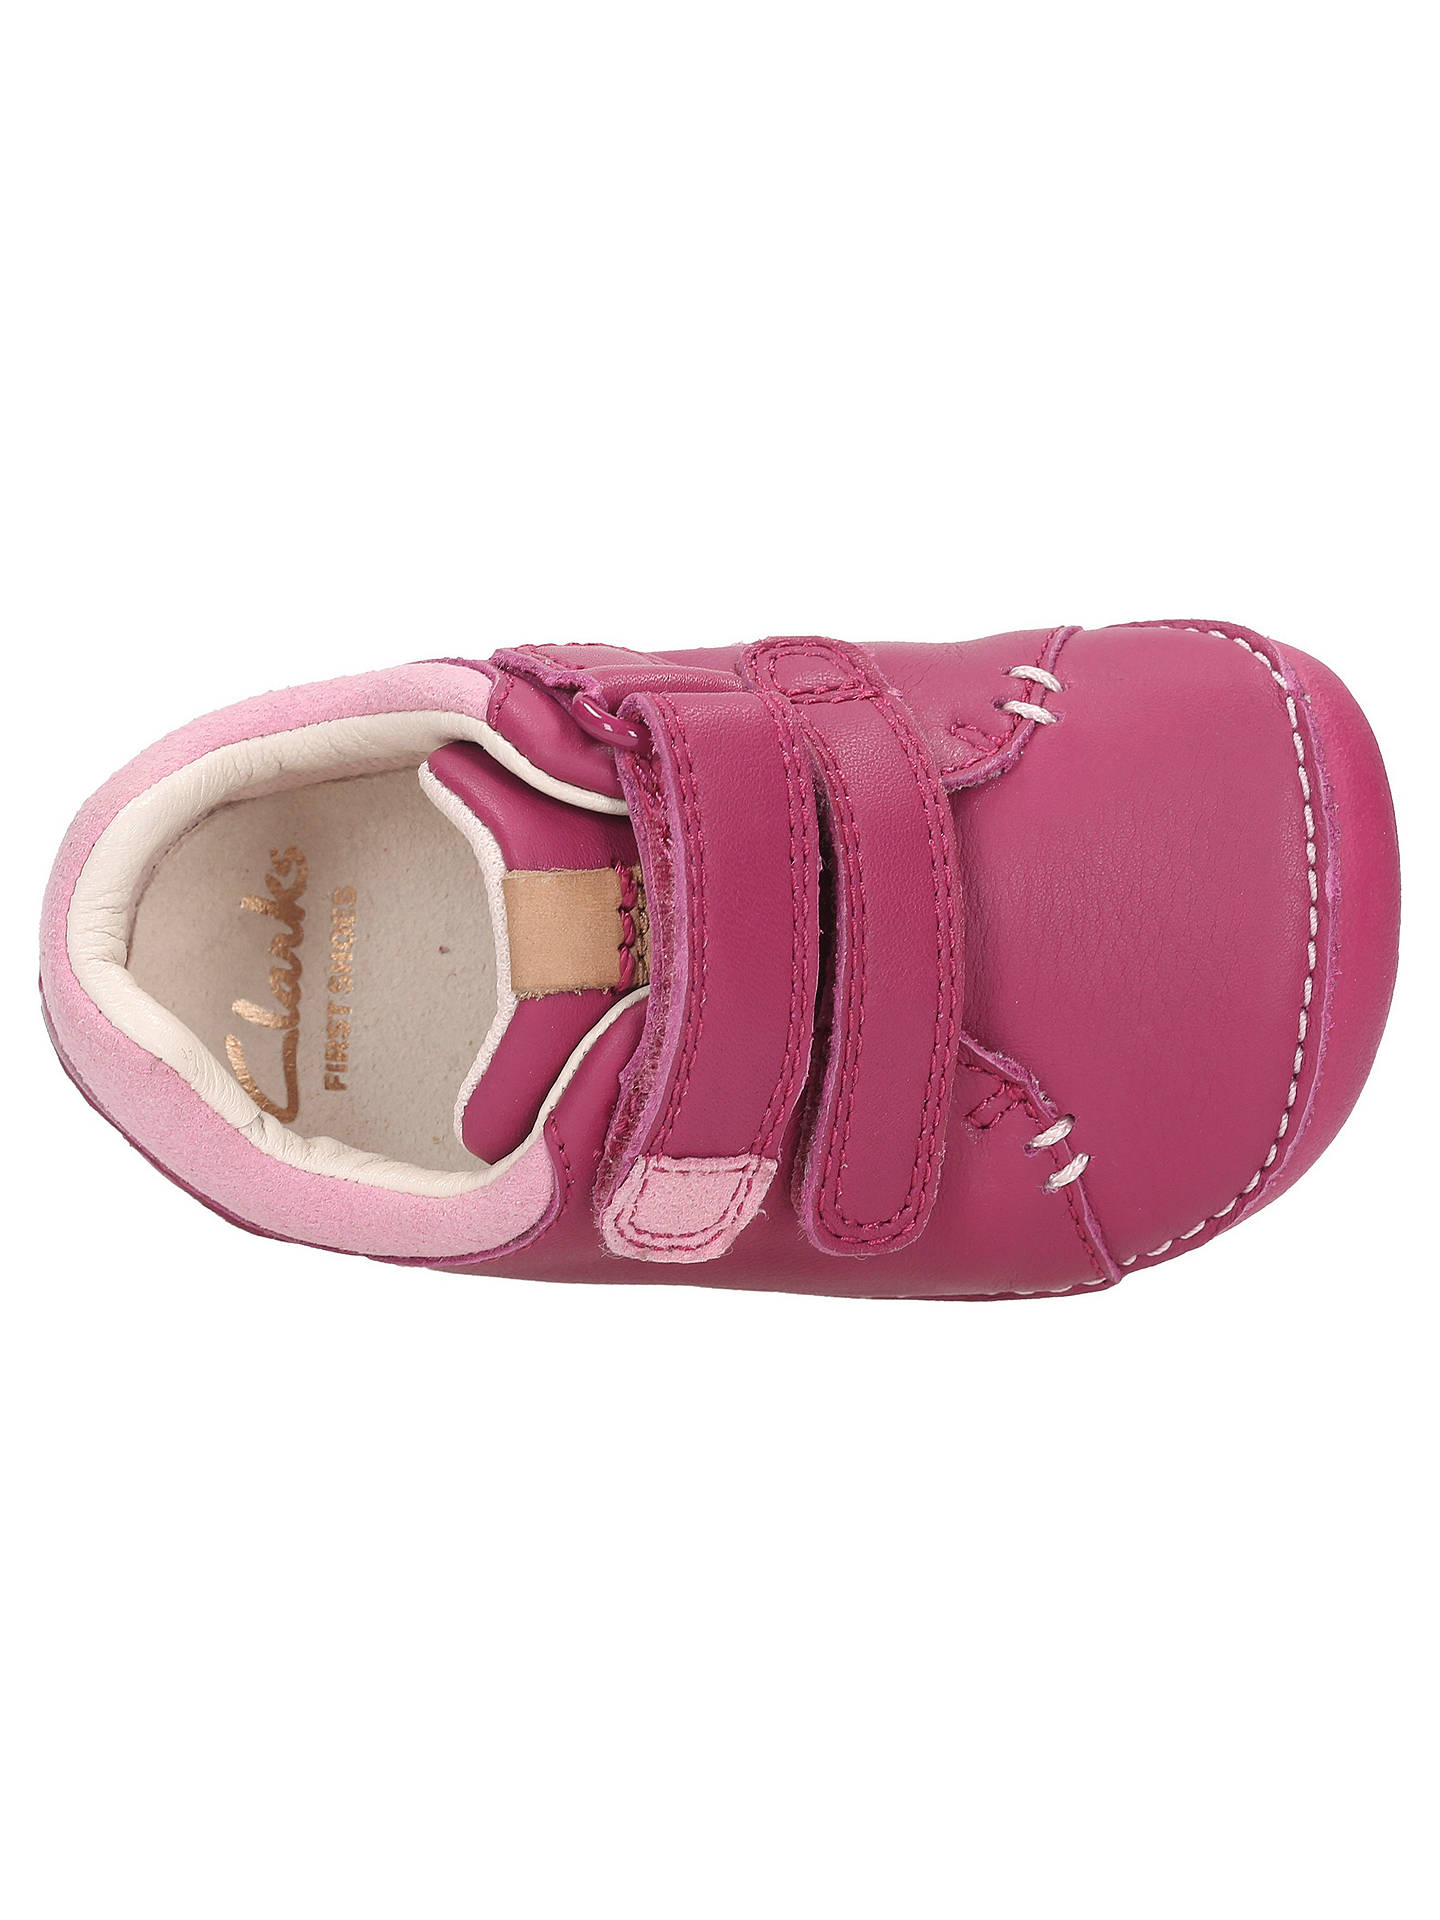 "Girls First Shoes By Clarks Casual Shoes /""Little Hen/"""